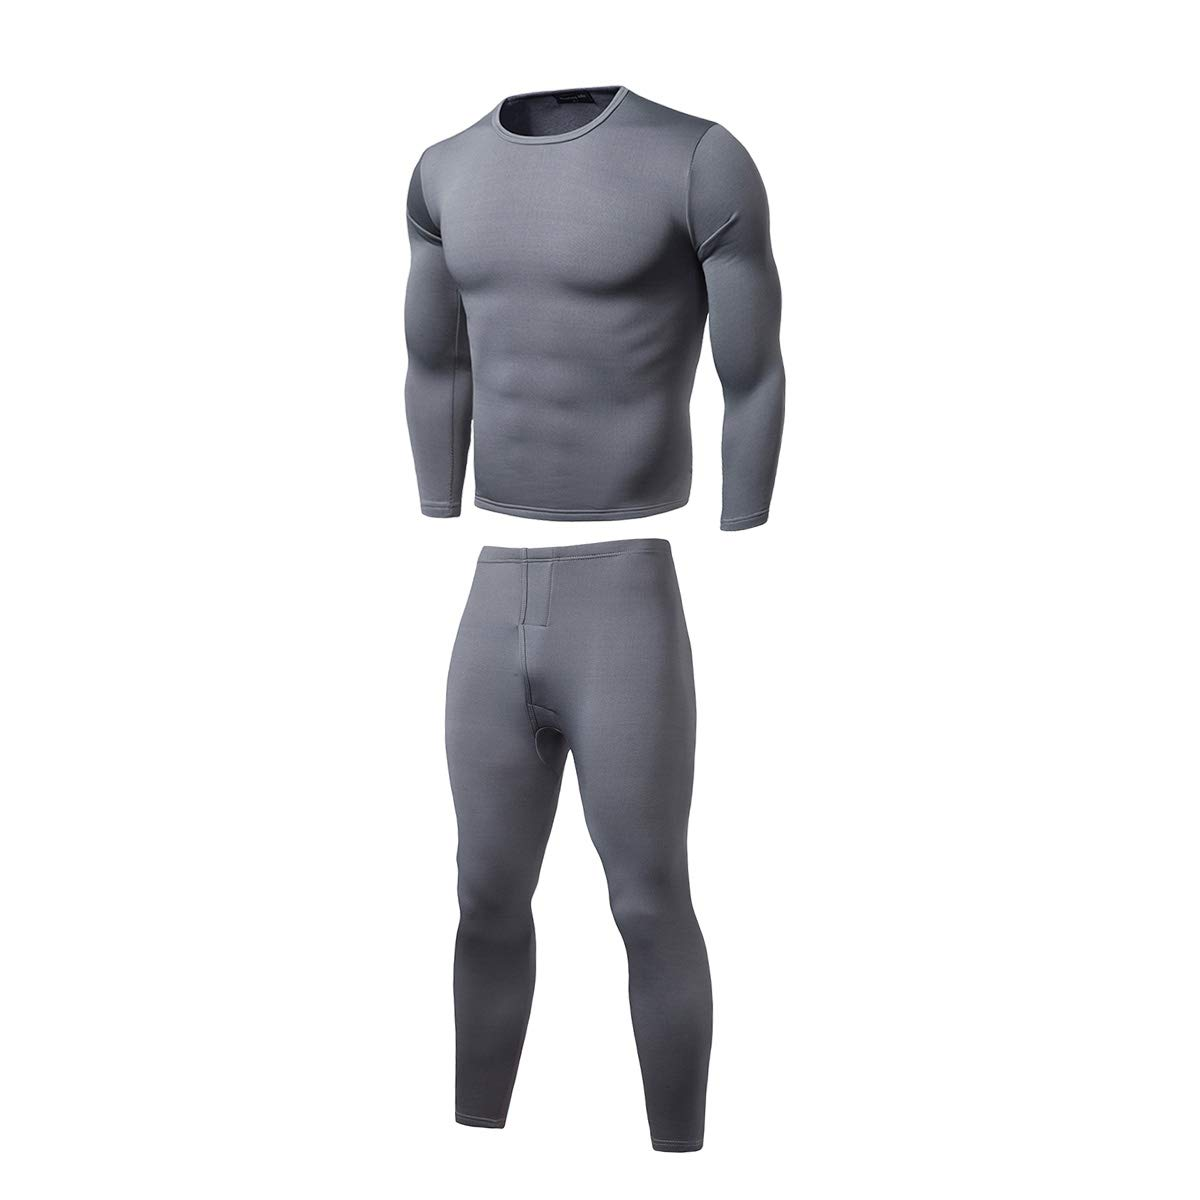 OUlike Mens 2ps Thermal Underware Fleece Thermos Warm Long Winter Set Top and Bottom